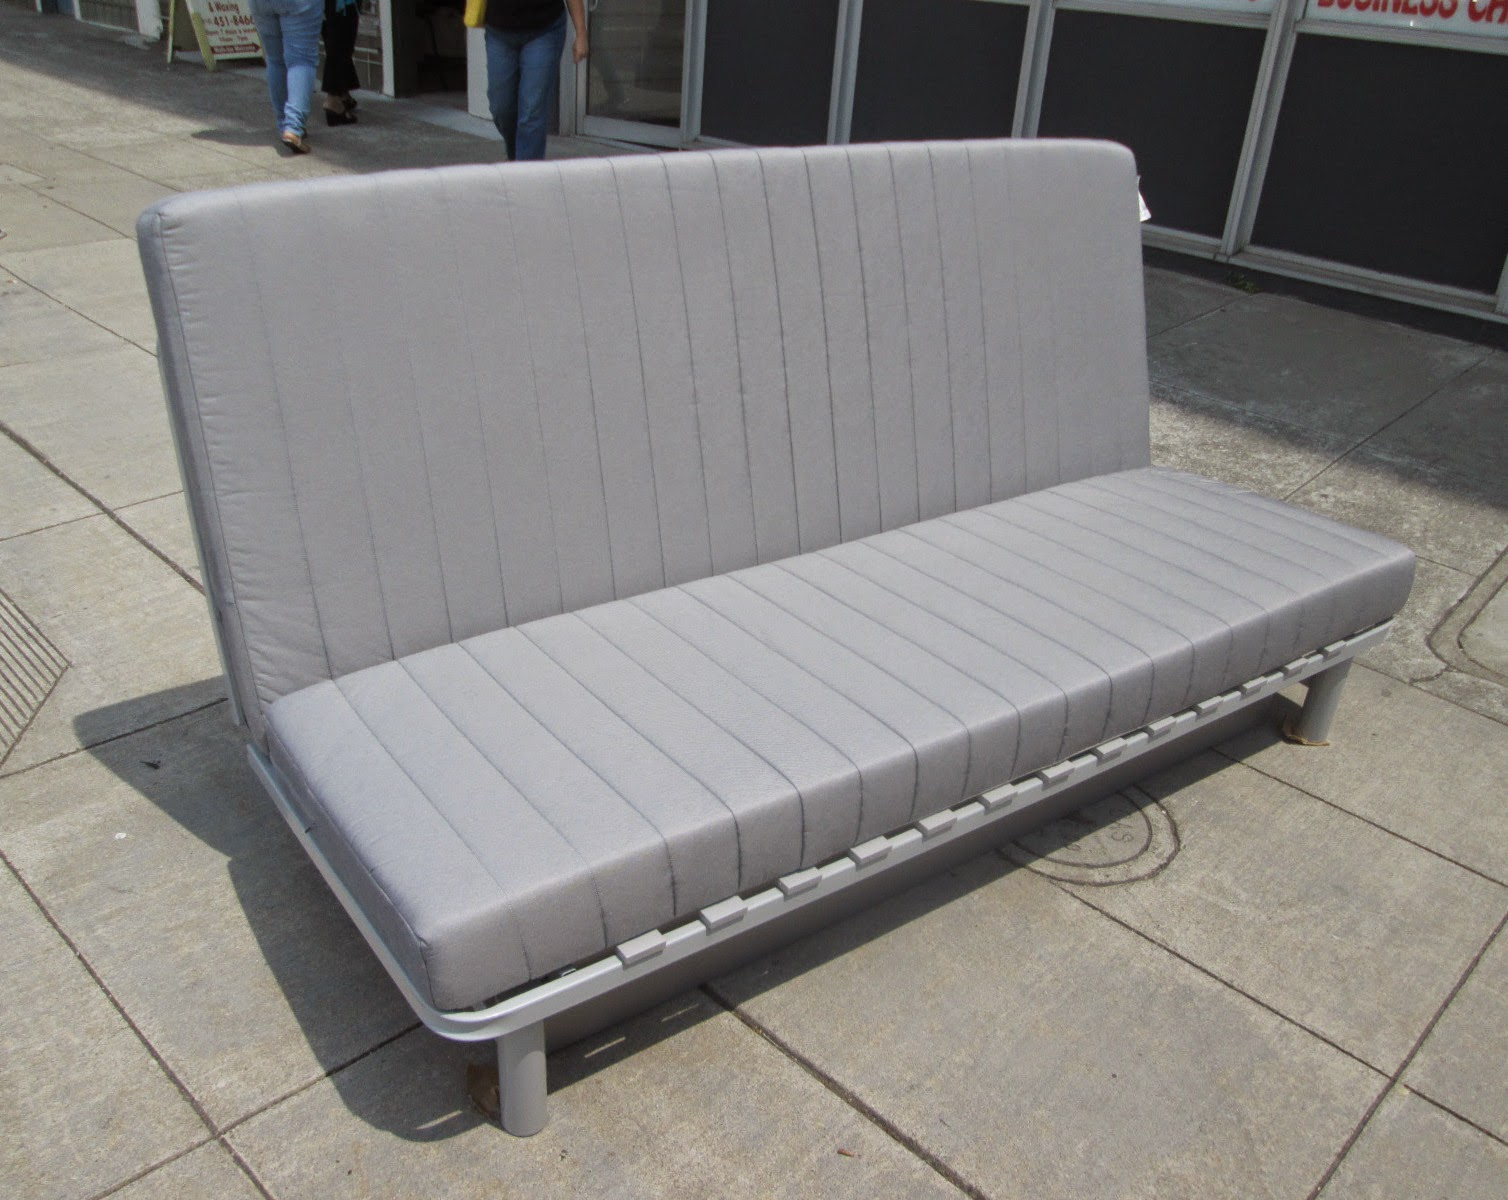 Sold Ikea Futon With Cover 80